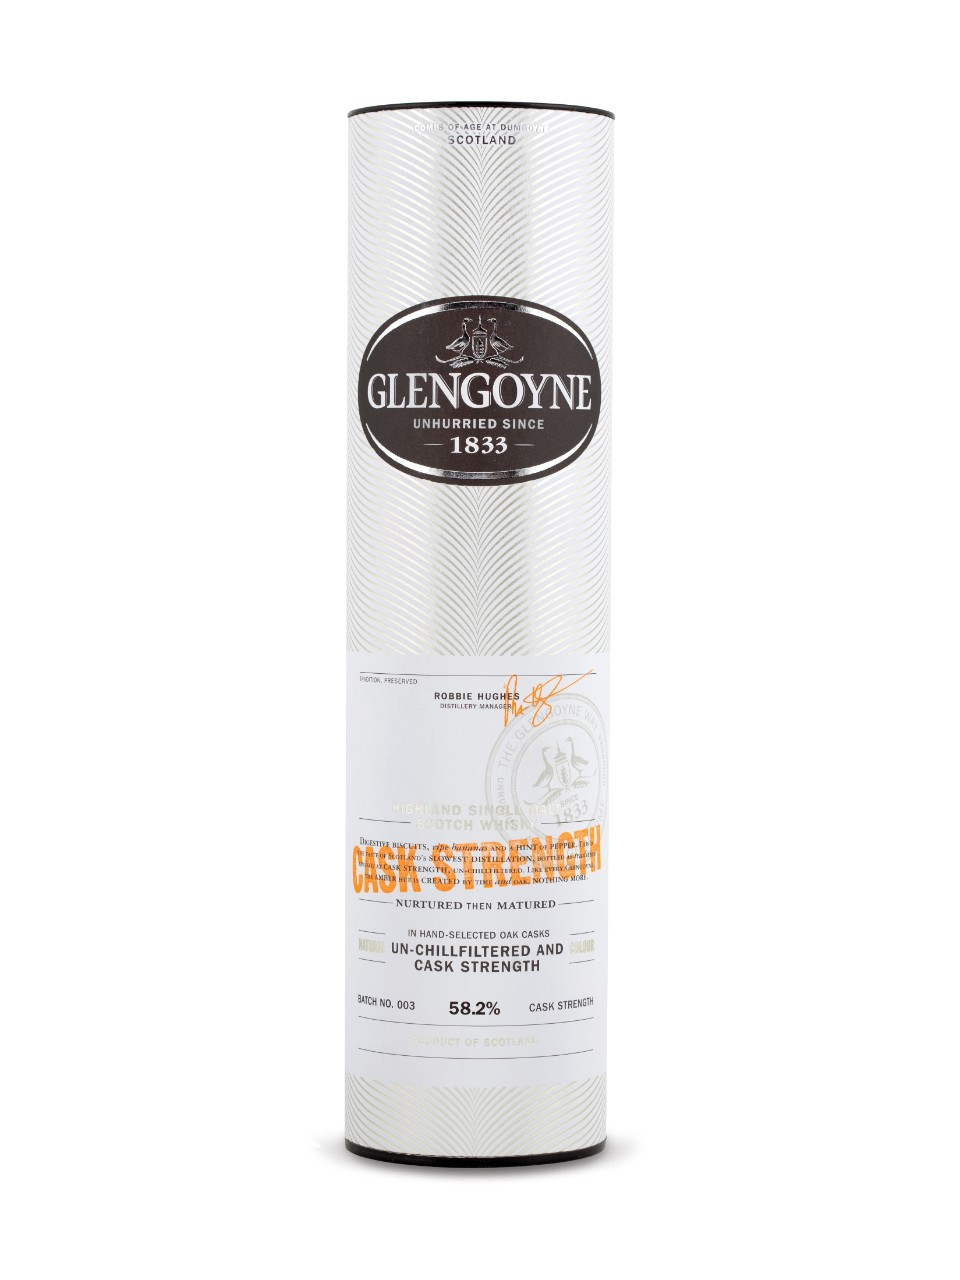 Glengoyne Cask Strength Old Highland Single Malt                                                                                -A